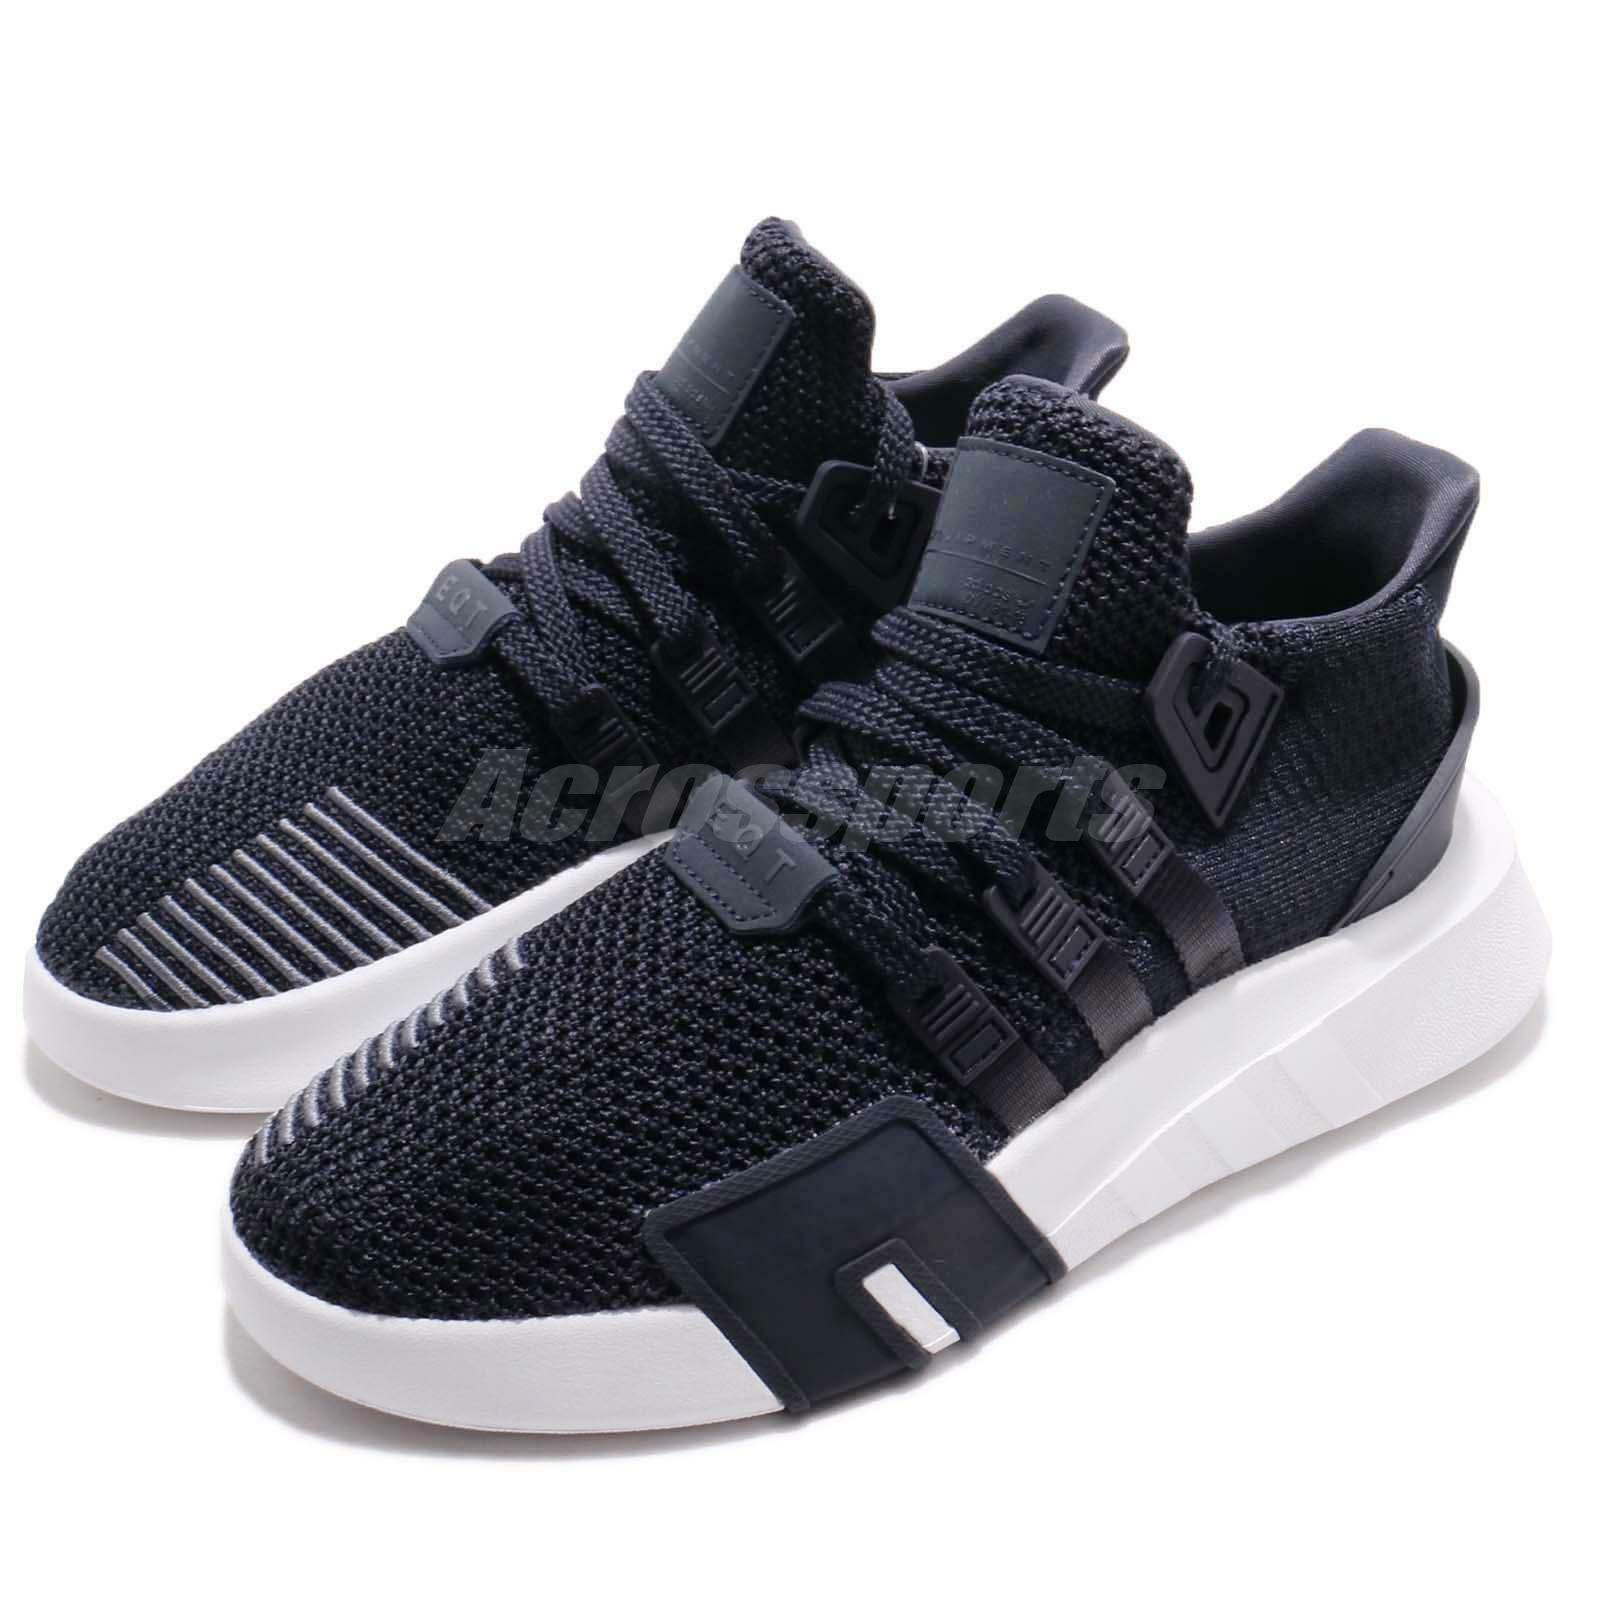 Adidas Originals  EQT Bask ADV W Night Grey White Women Running shoes B37547  quality product